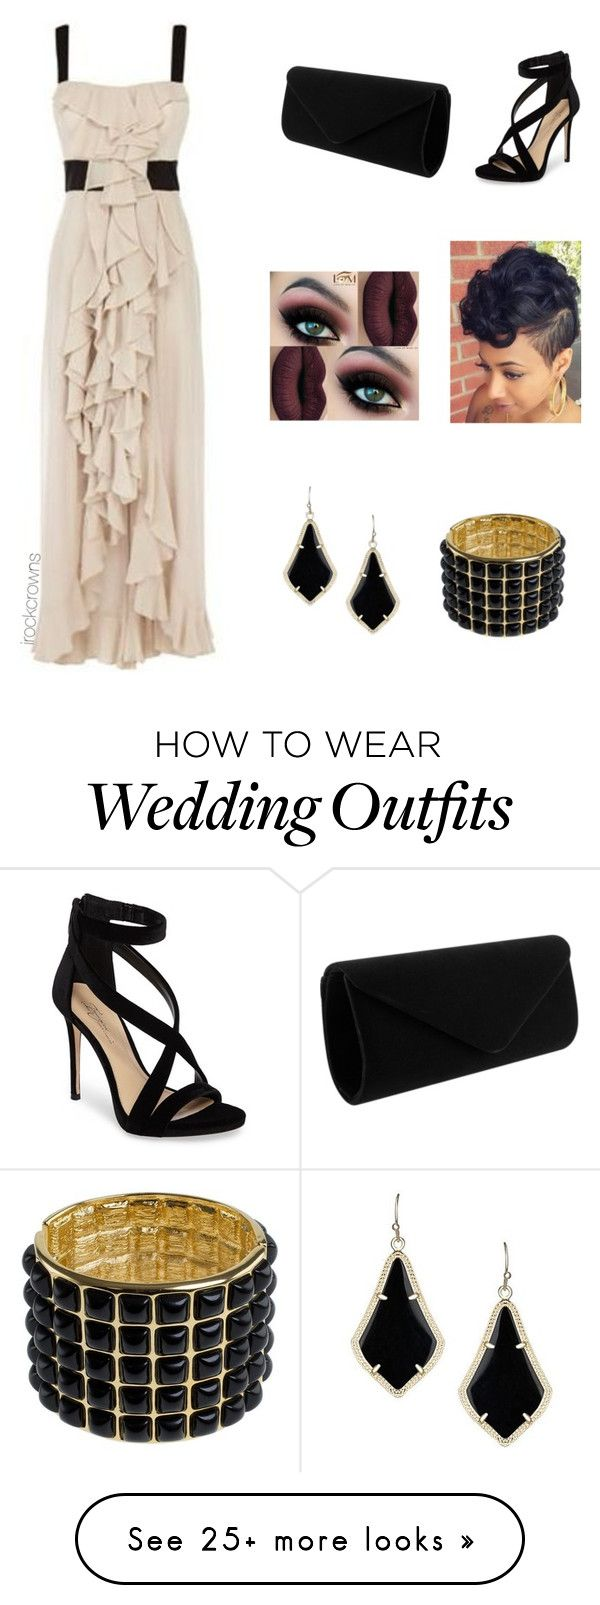 """A Wedding Guest"" by irockcrowns on Polyvore featuring Karen Millen, Imagine by Vince Camuto, Kendra Scott and Kenneth Jay Lane"